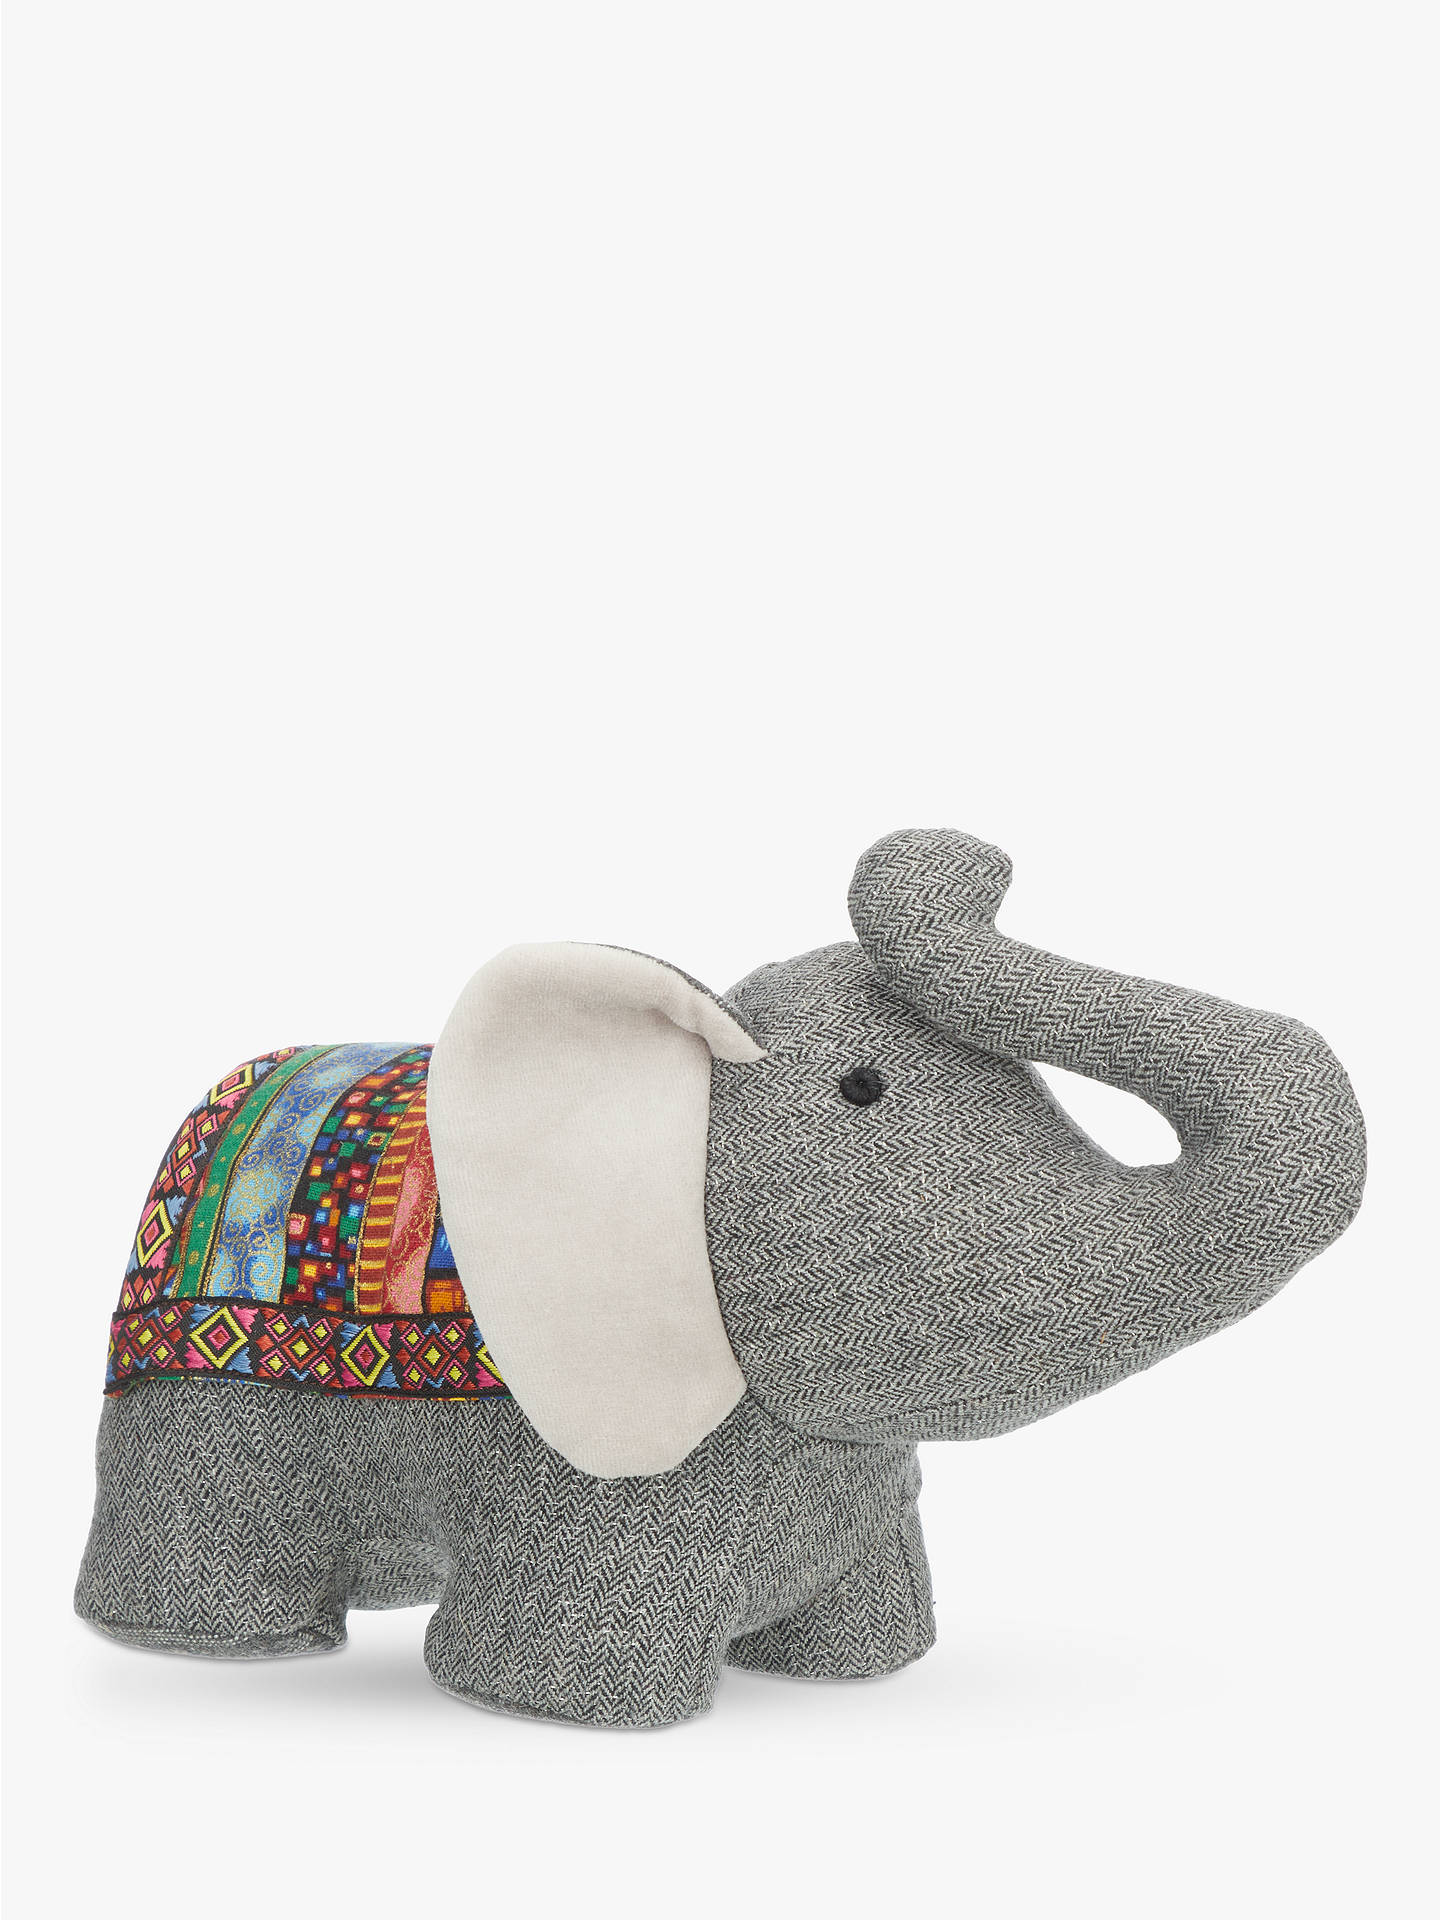 Buy John Lewis & Partners Elephant Door Stop Online at johnlewis.com